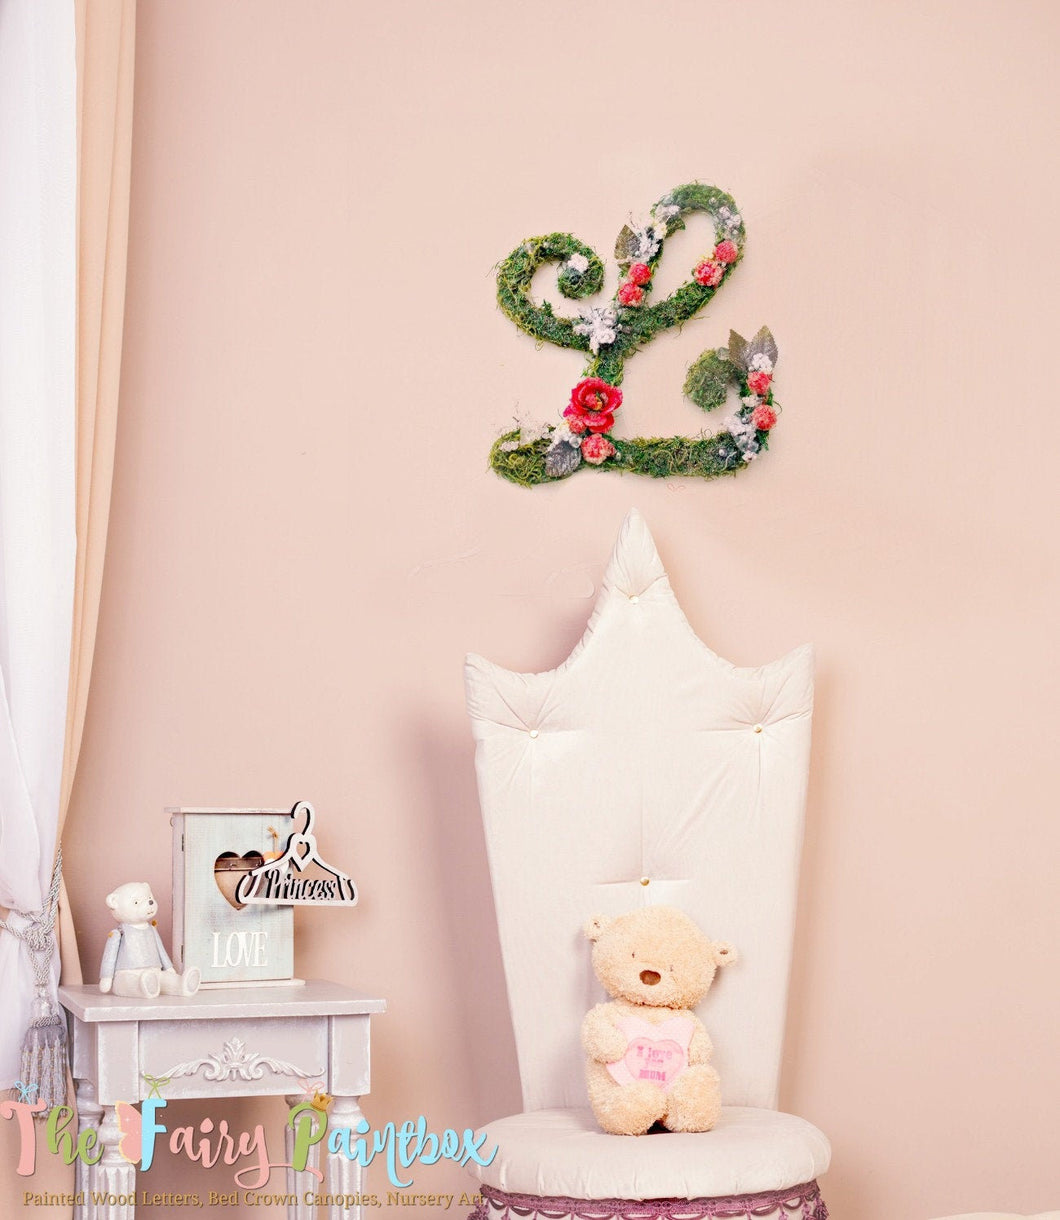 Botanical Rose Nursery Room Wall Monogram - Red Rose Moss Letters - Floral Bedding Crib Decor Letters - Woodland Moss Baby Name Letters